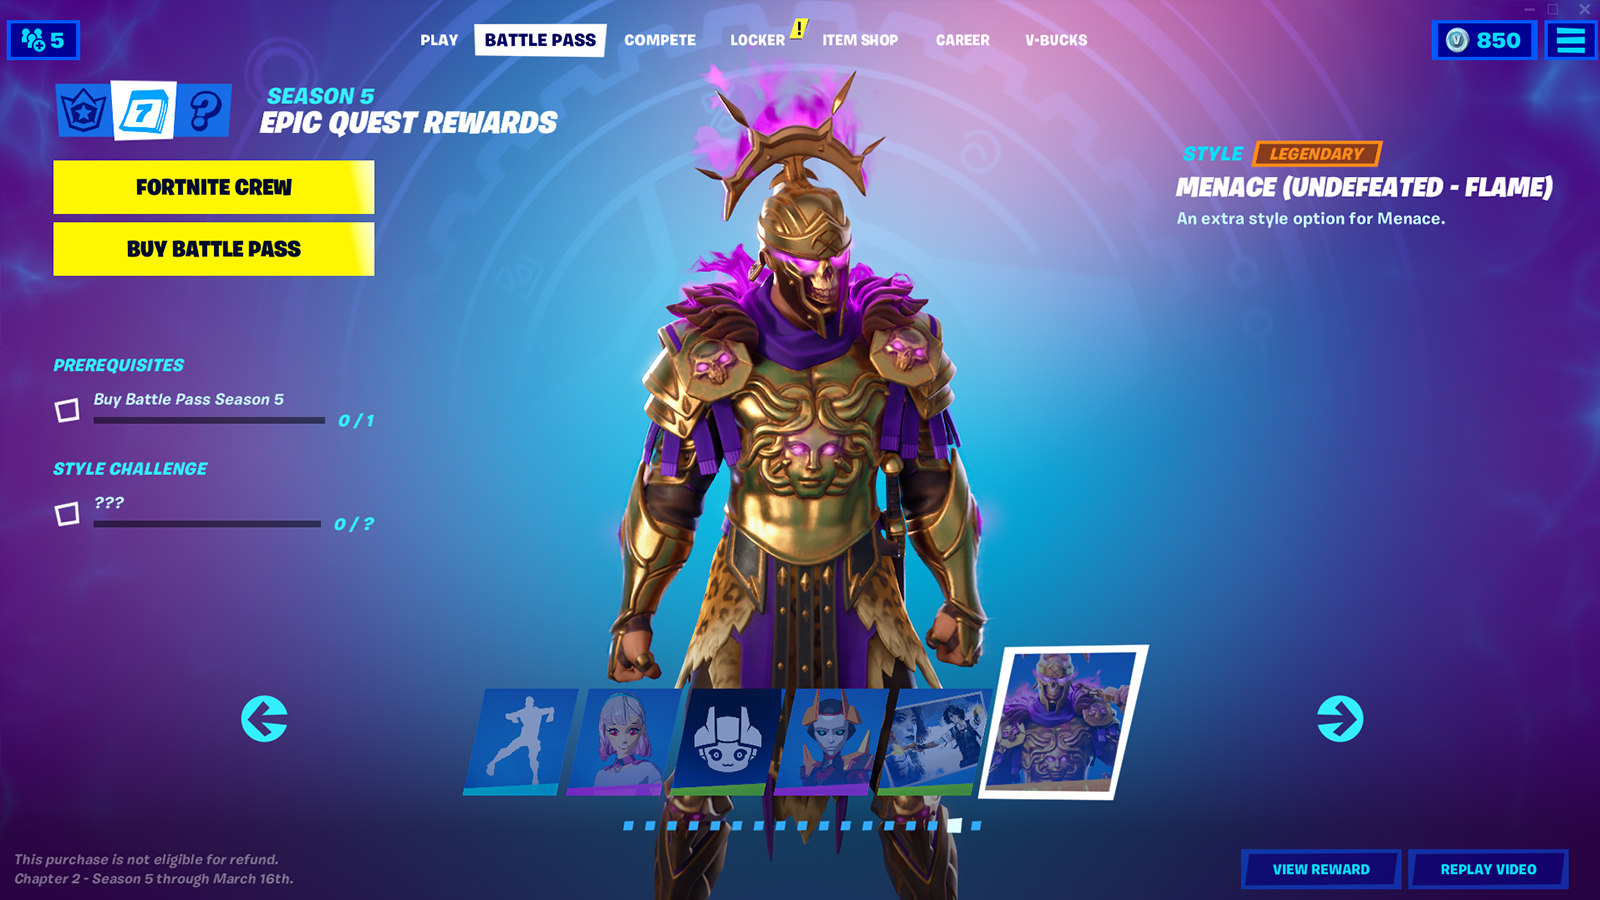 Image showing the final current rewards for this season's Battle Pass